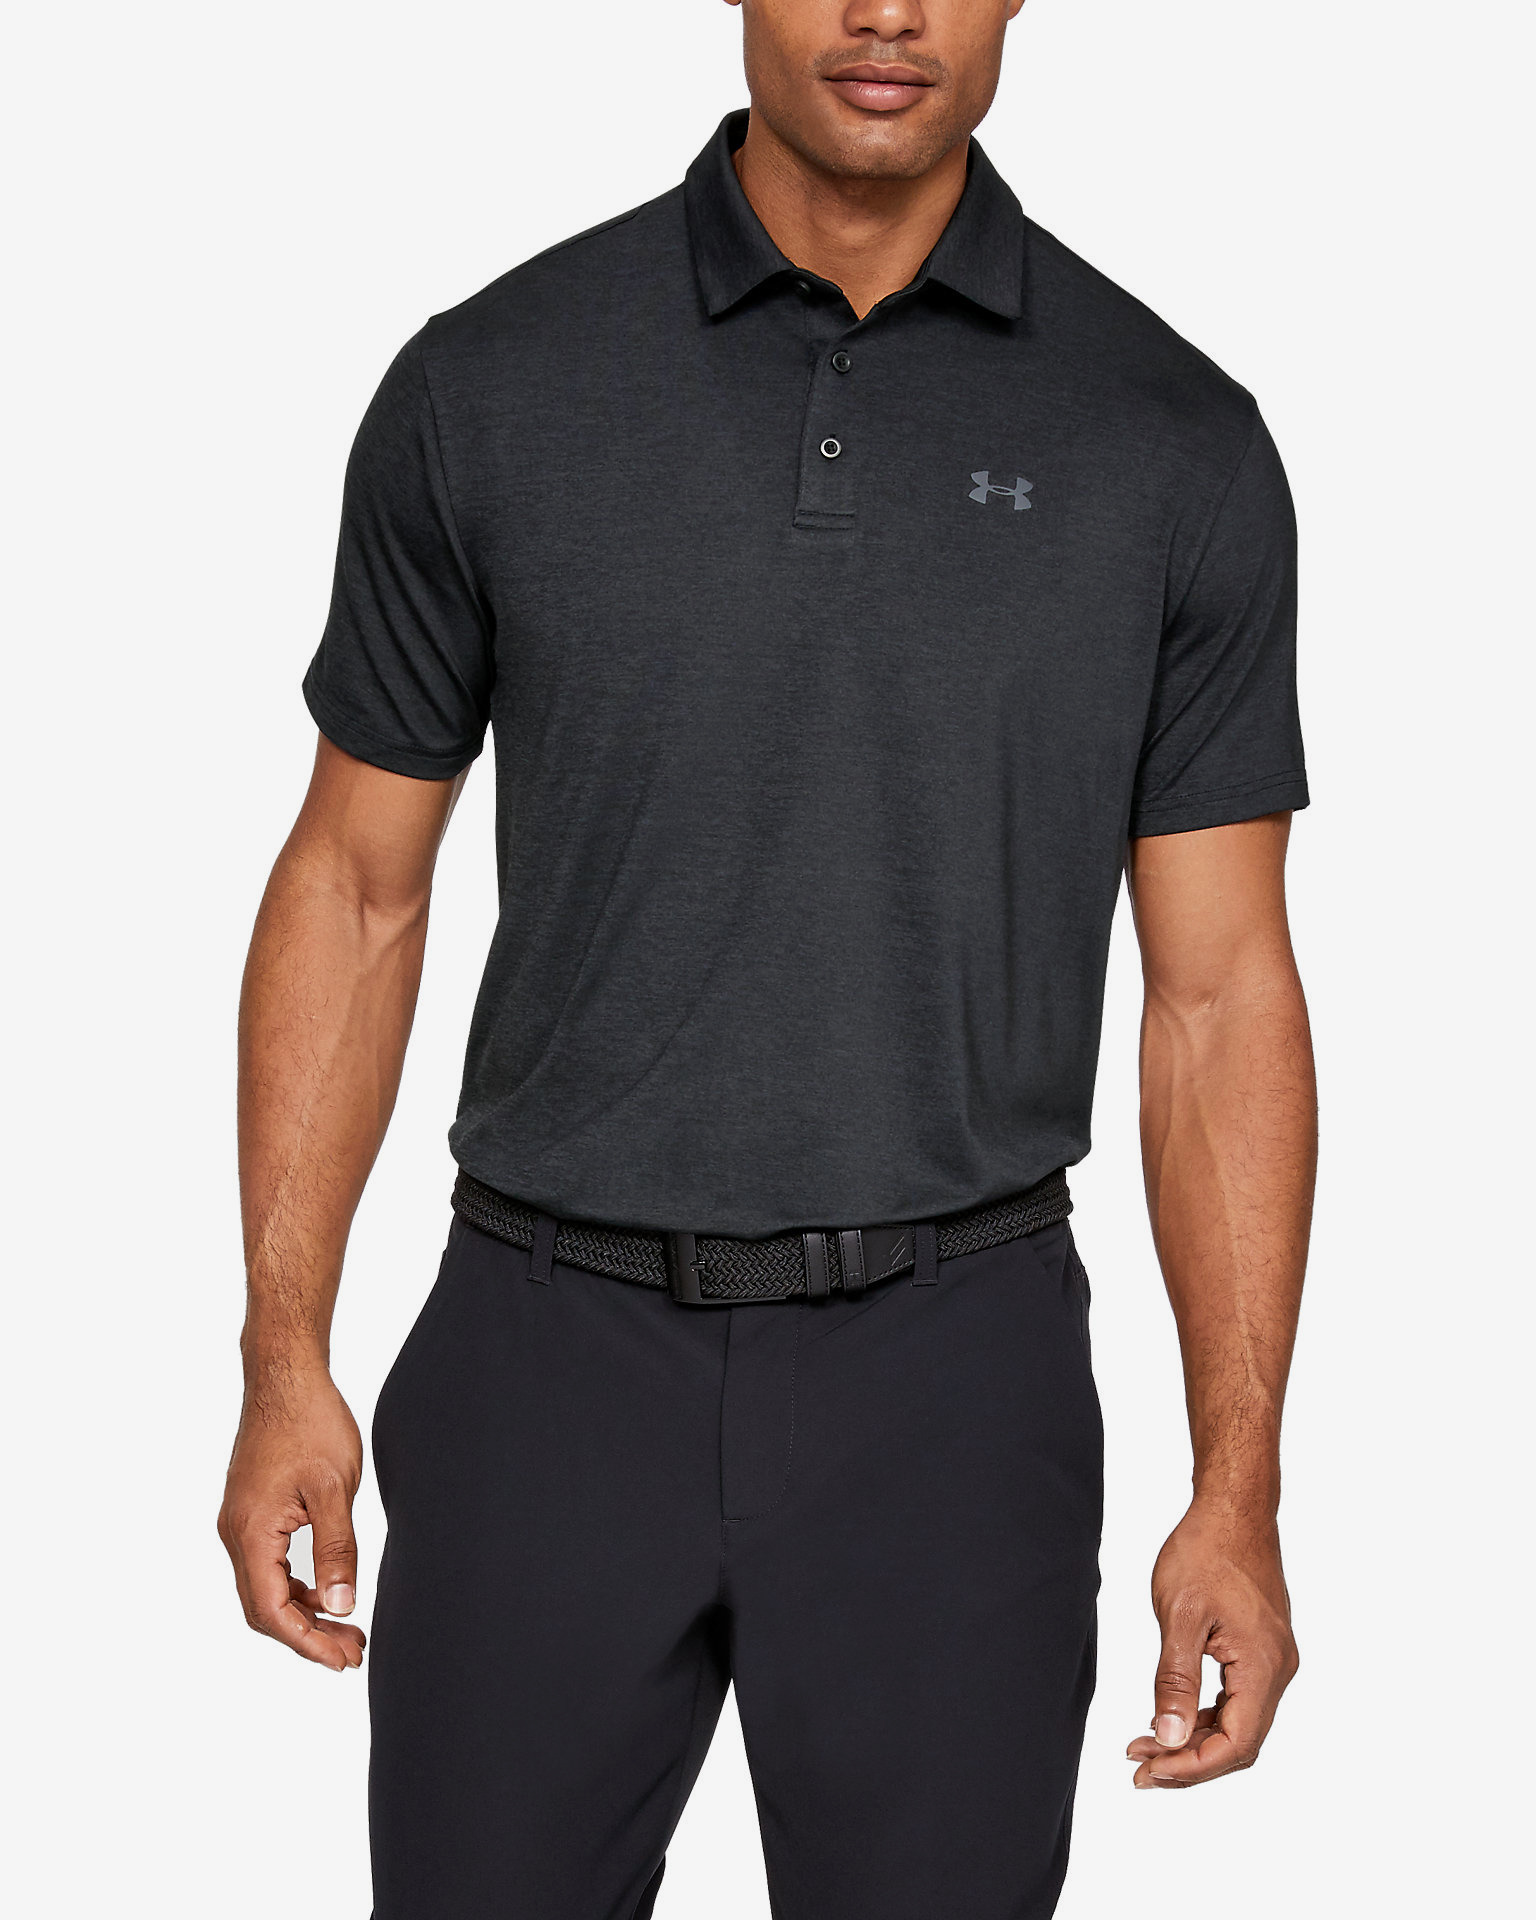 Playoff 20 Polo triko Under Armour